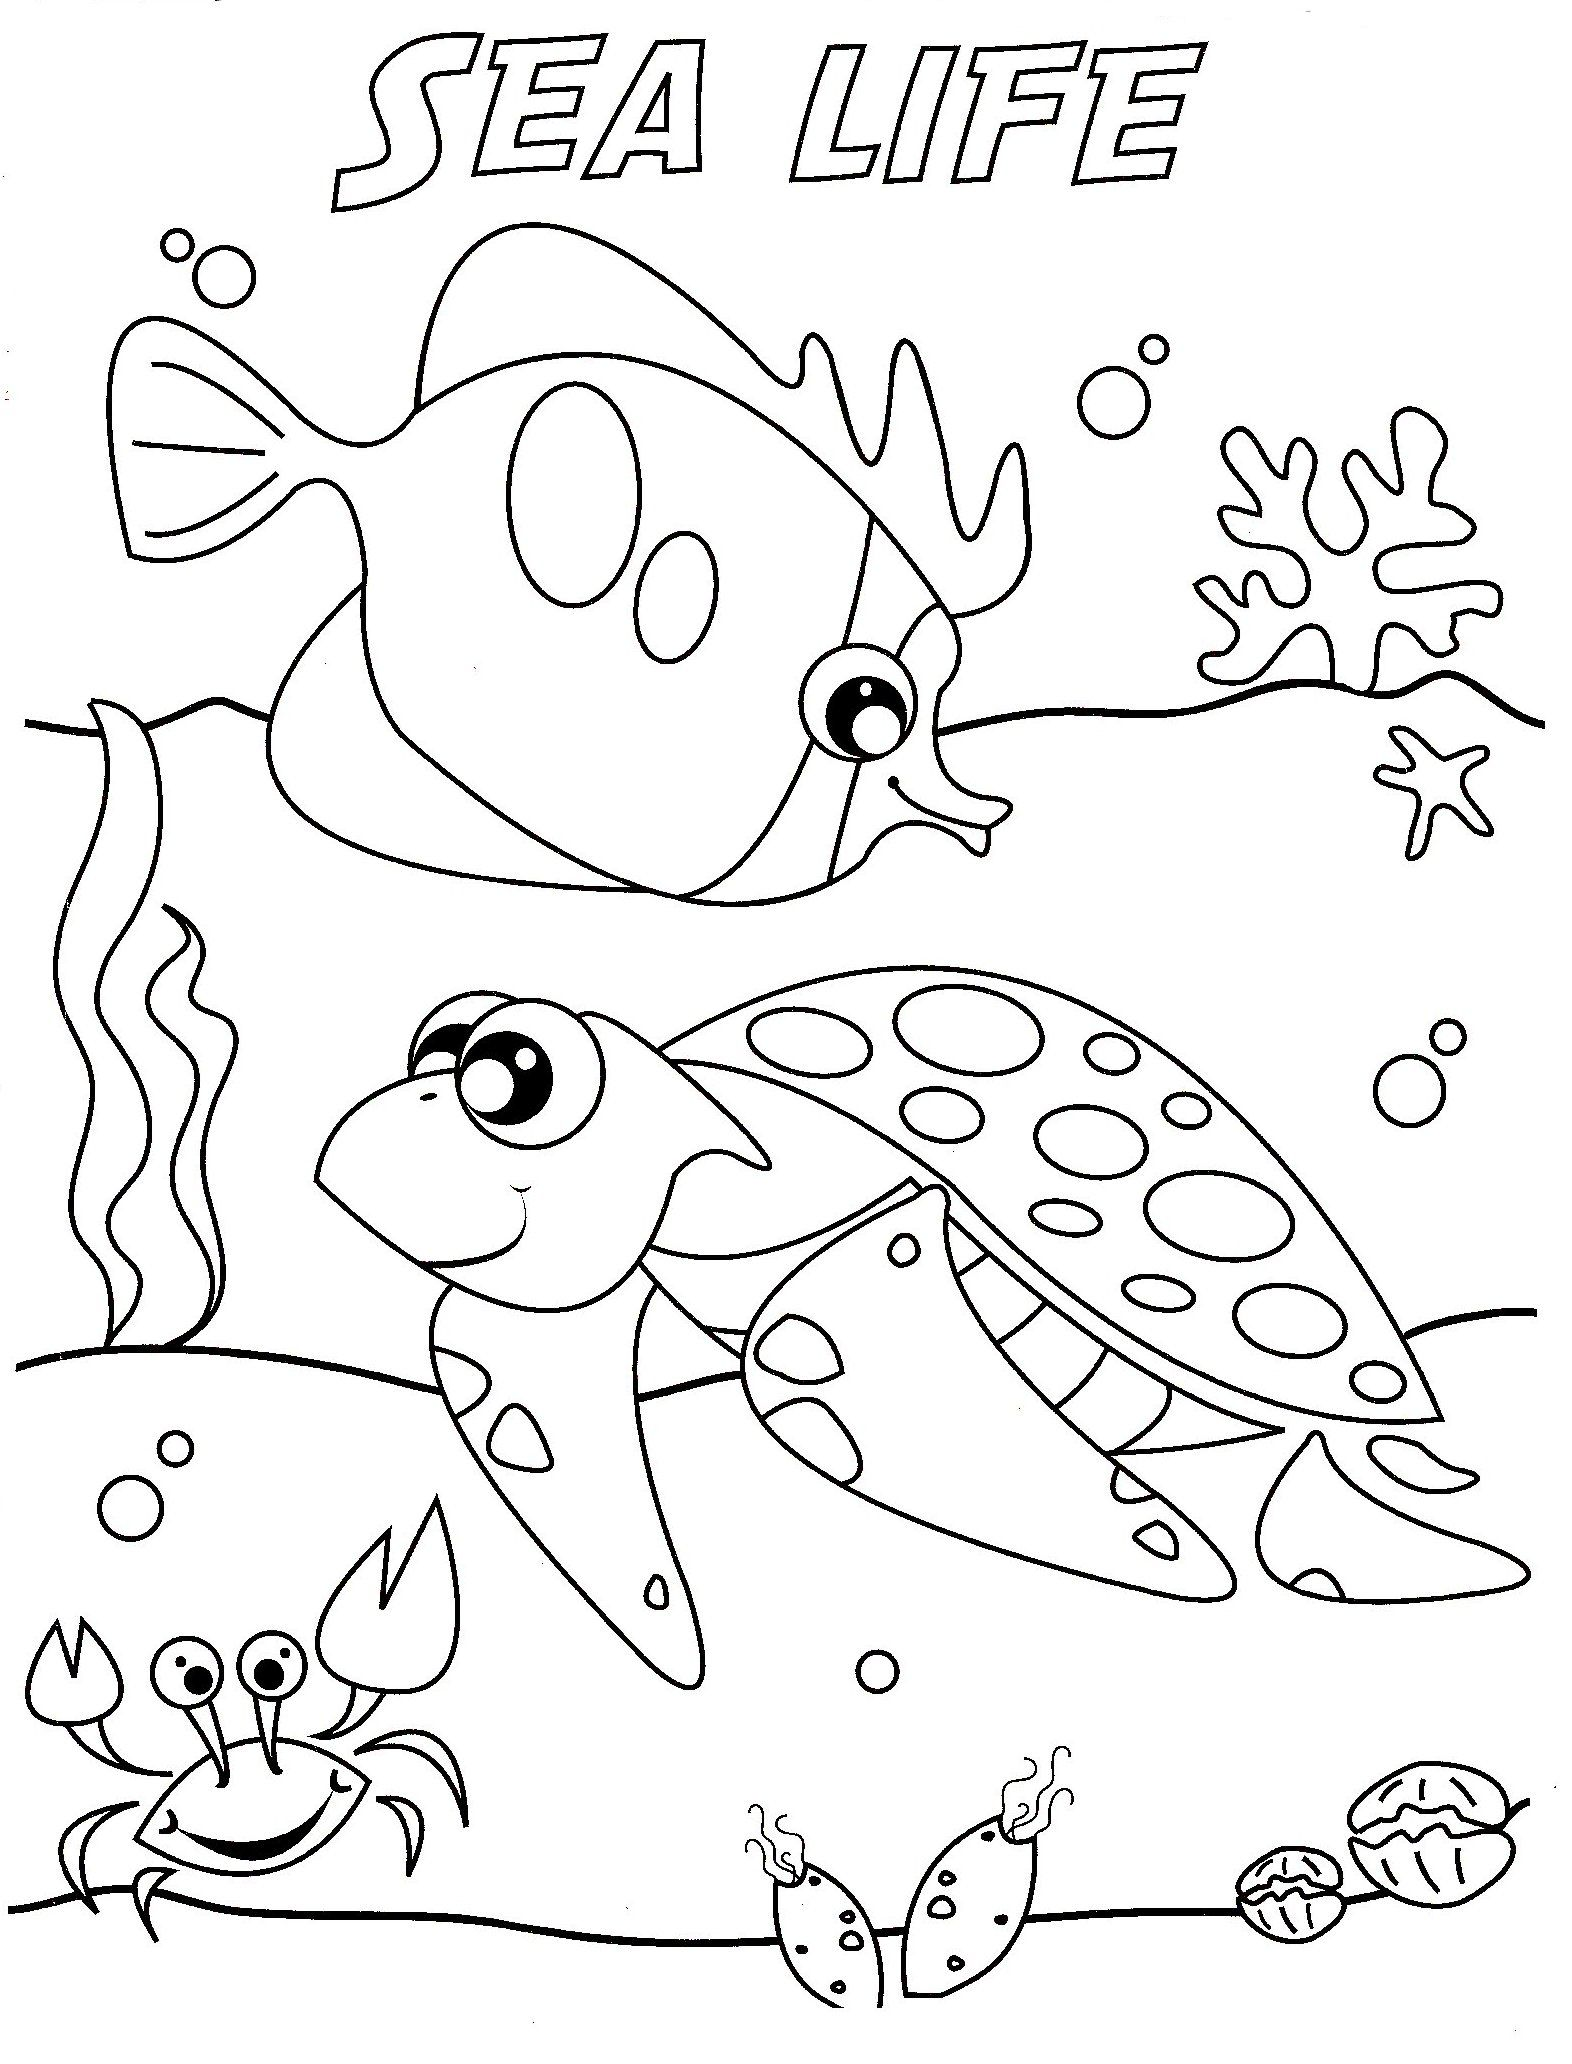 Ocean life coloring pages to download and print for free ...